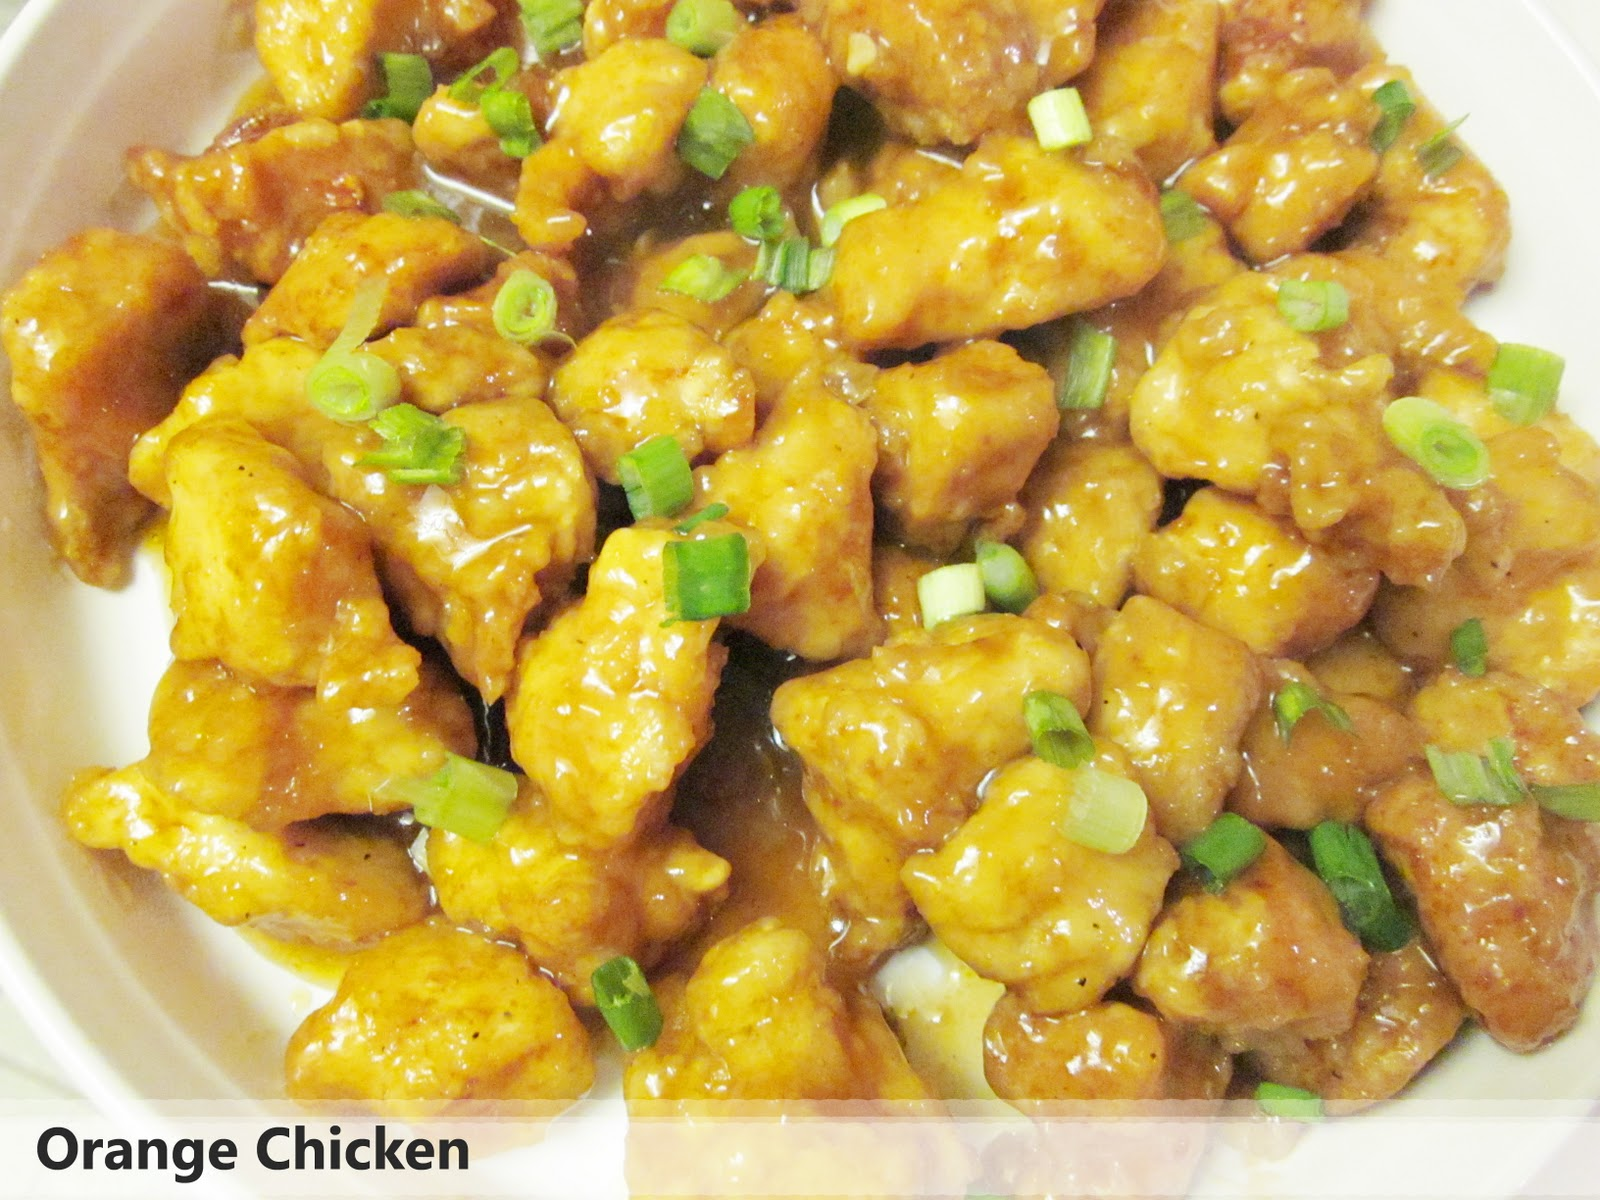 Diddles and Dumplings: Orange Chicken